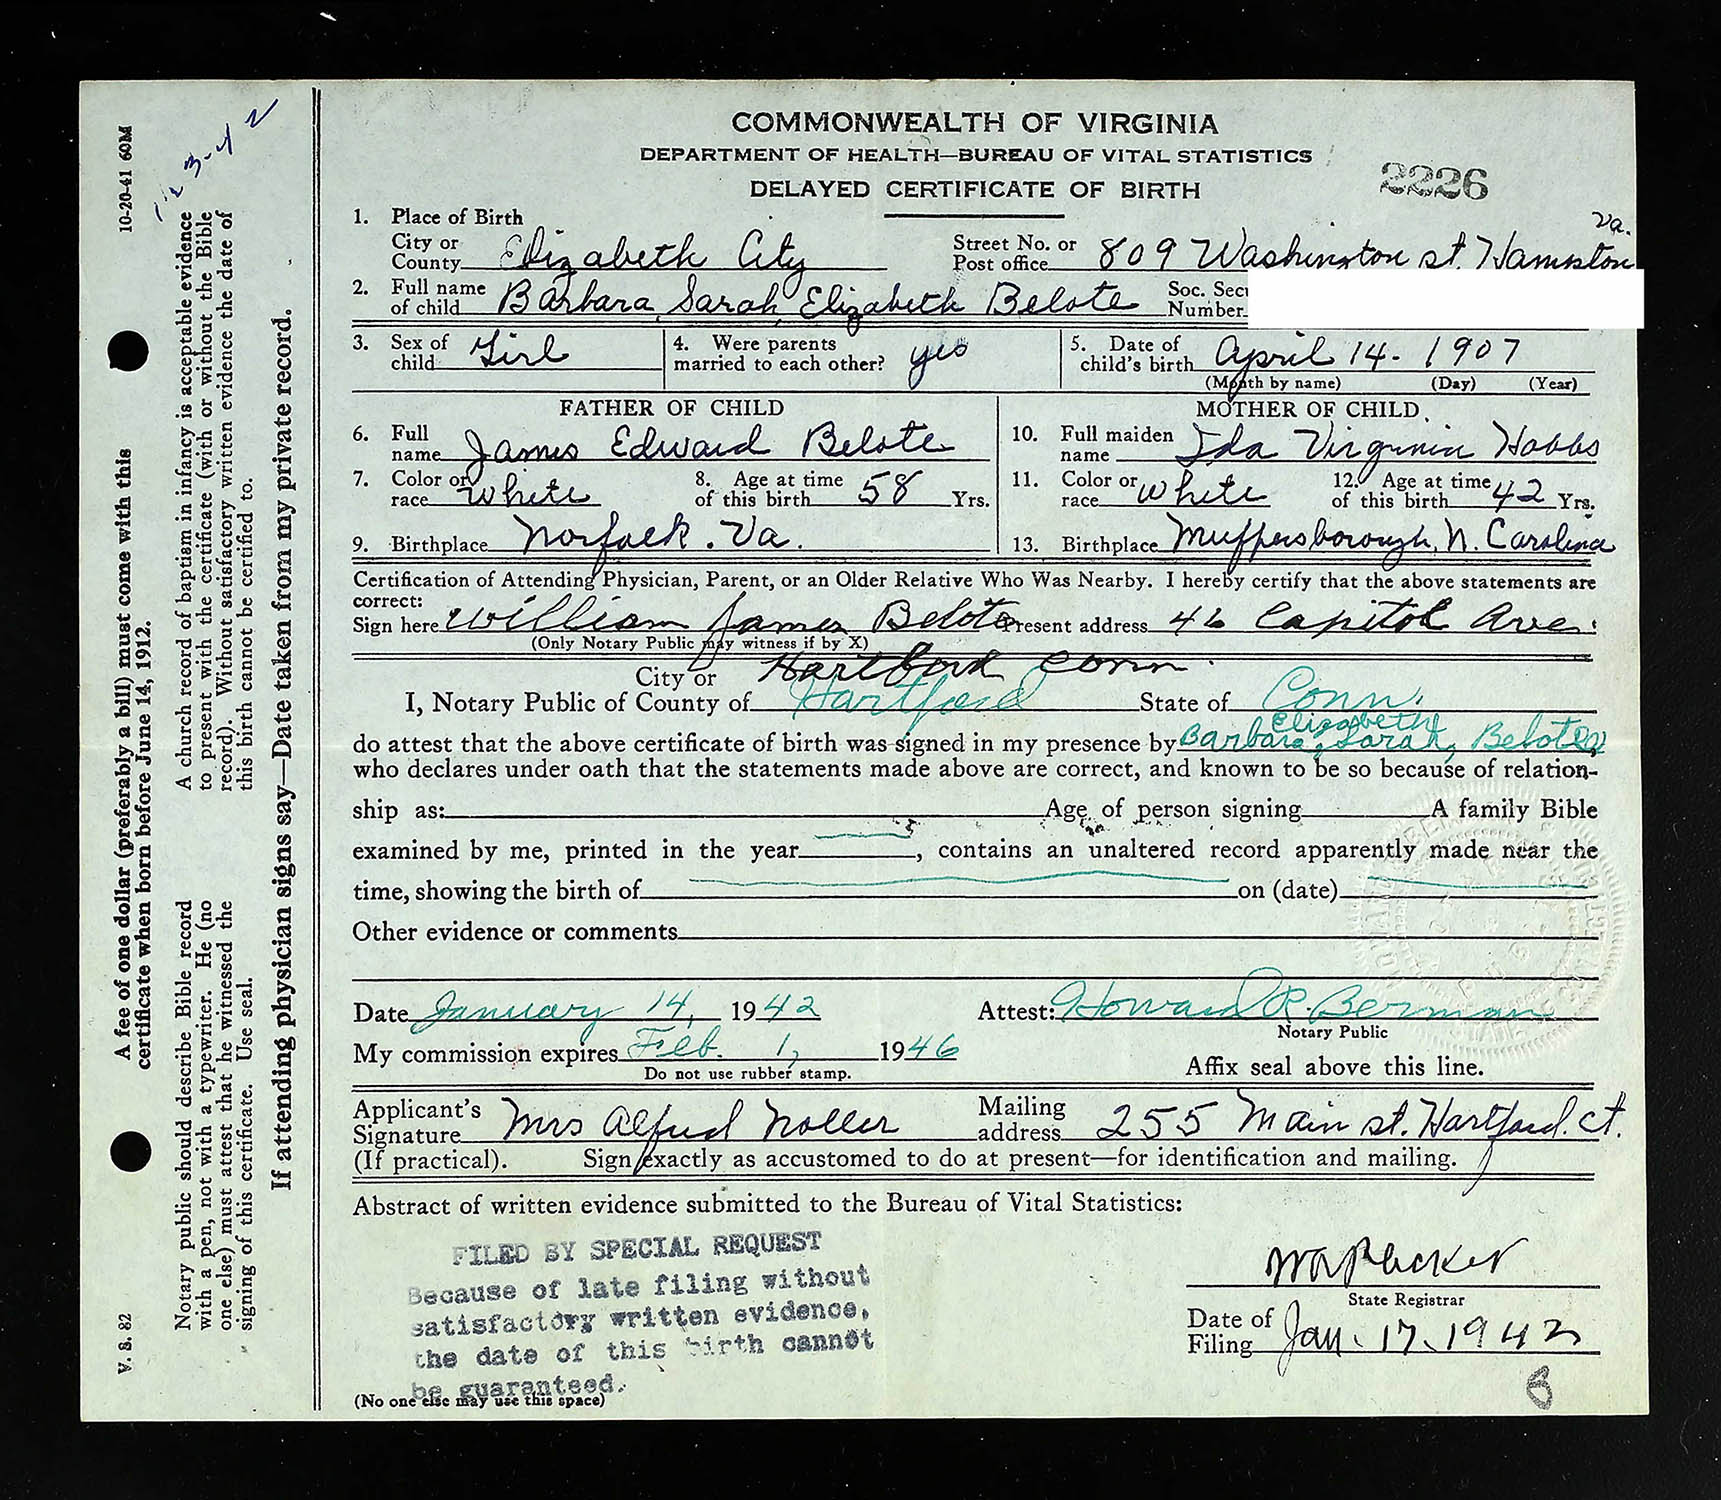 Delayed Birth Certificate For Barbara Sarah Elizabeth